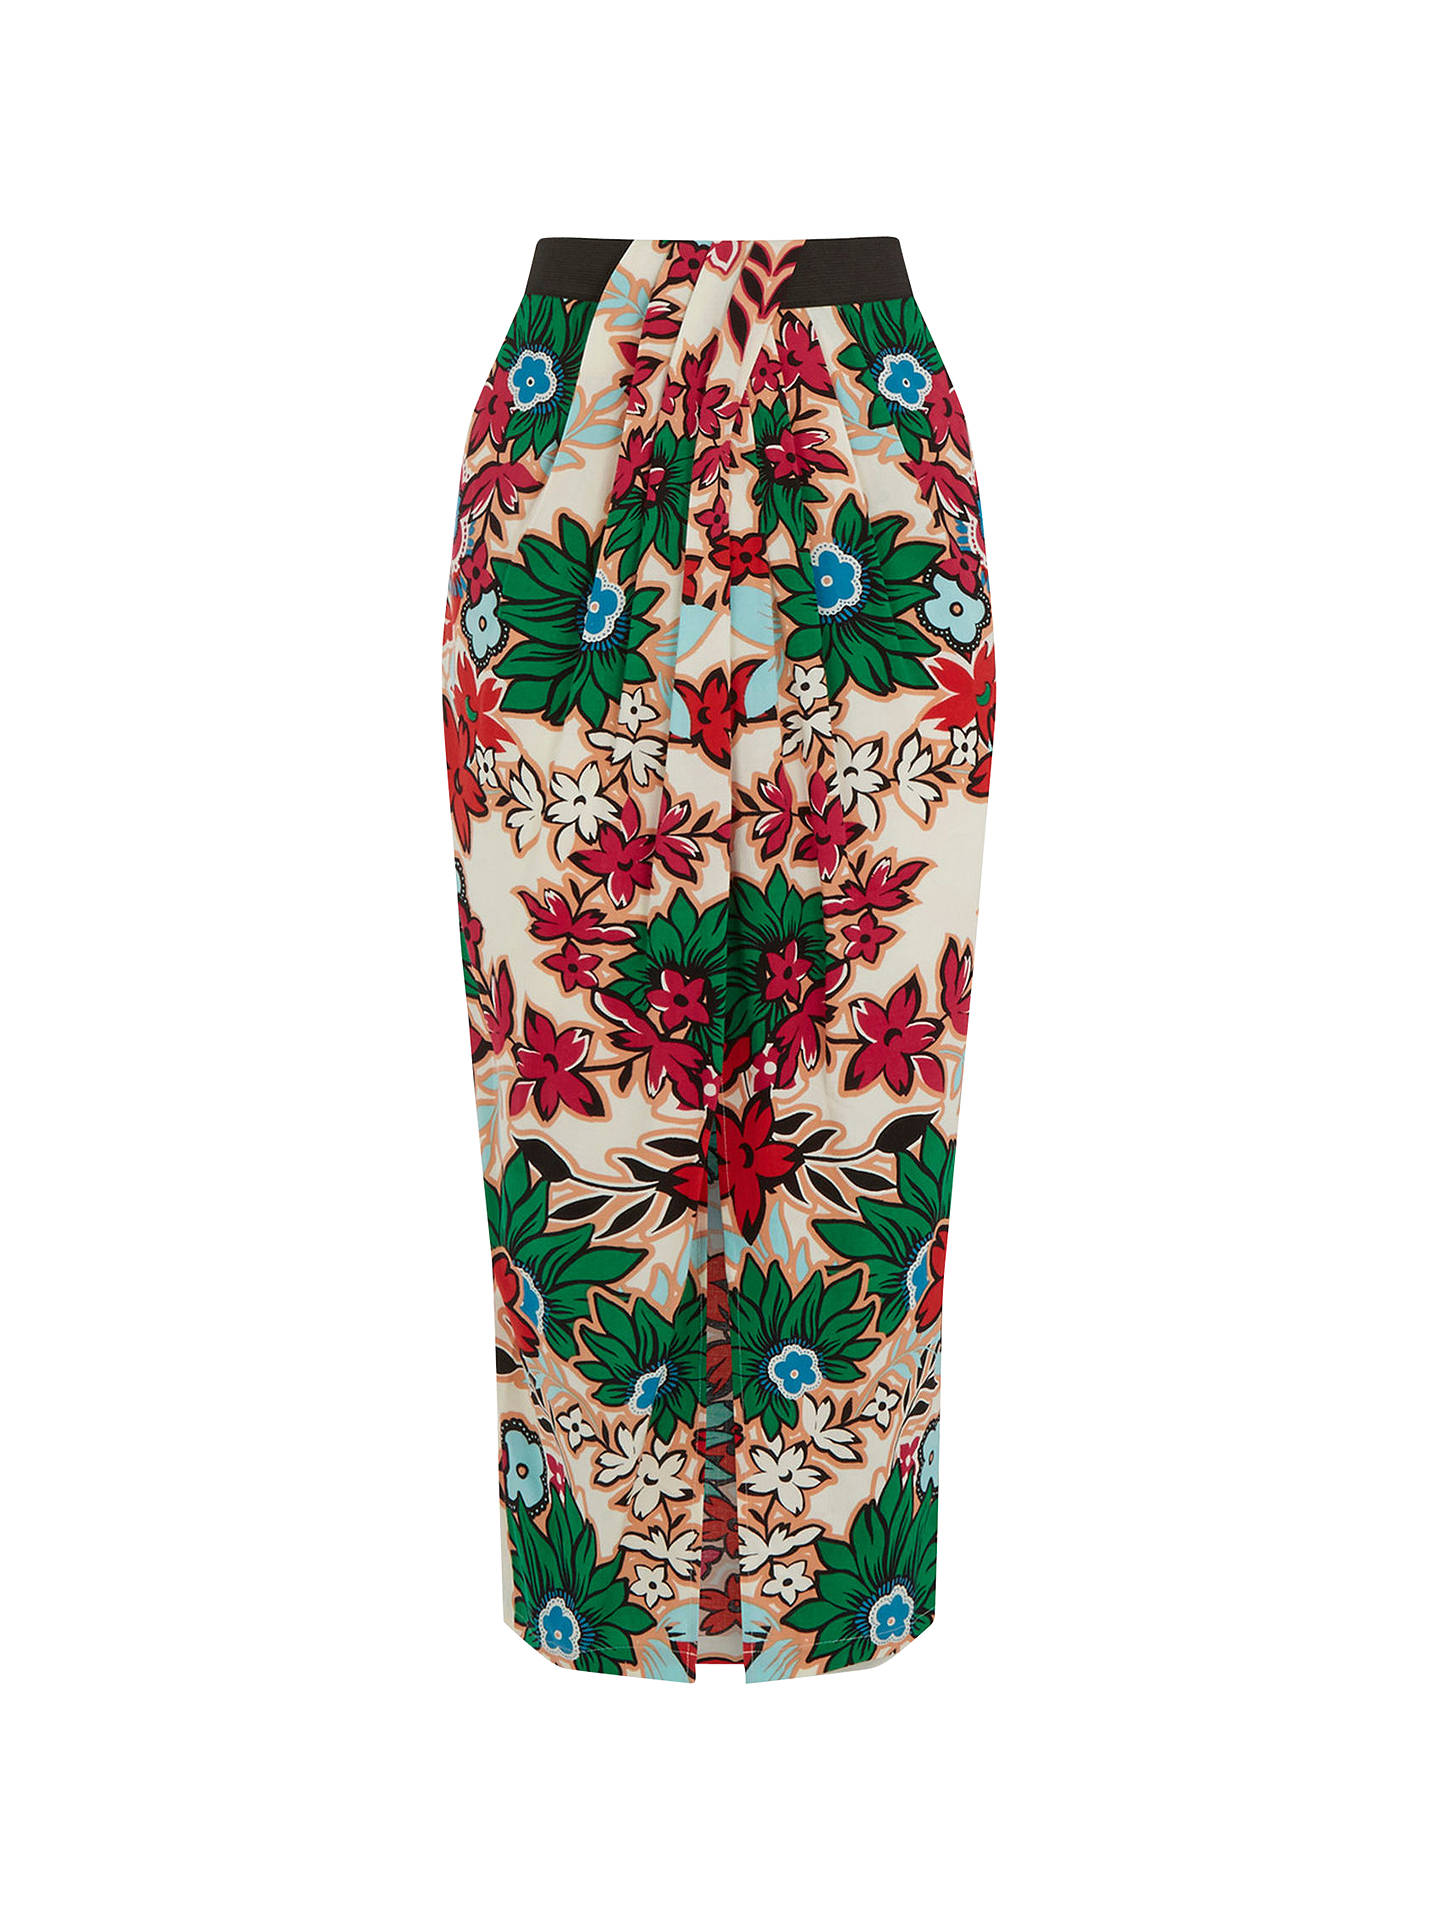 Warehouse NEW Summer Holiday Casual Floral Wrap Midi Skirt in Multi Sizes 8-14